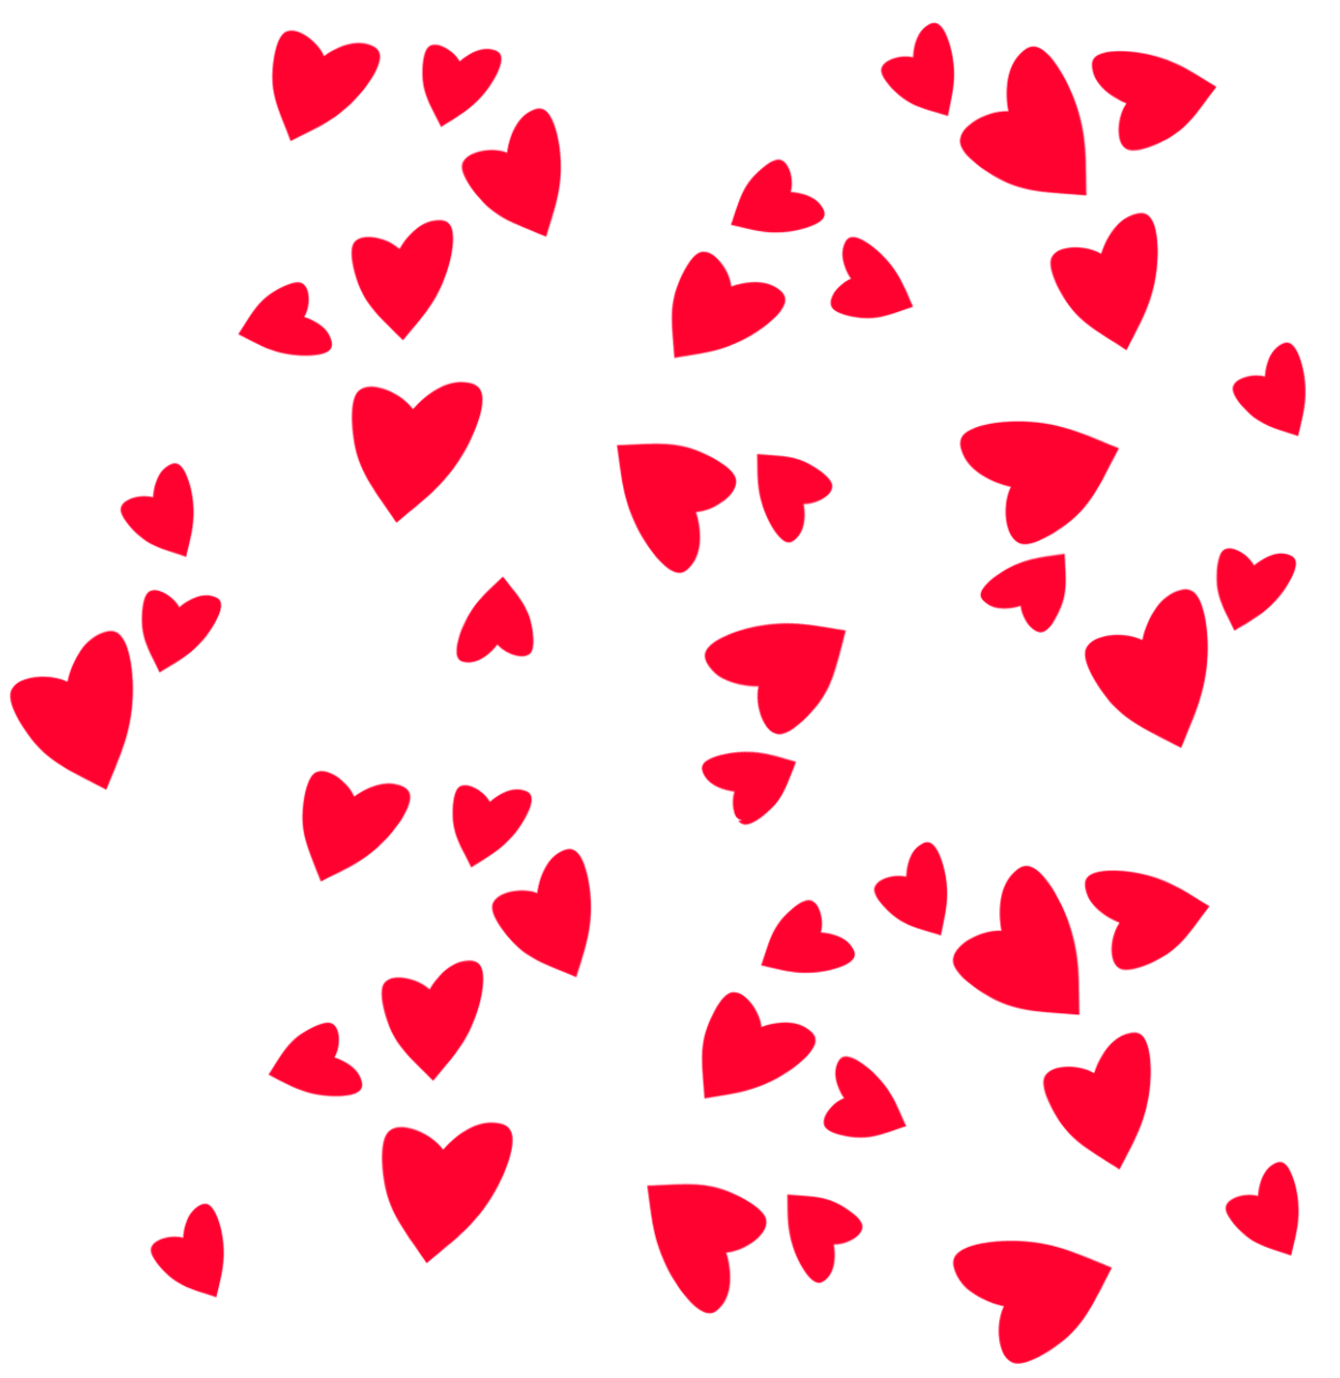 Free valentines clipart jpg transparent Valentines Day PNG Hearts Decor Clipart Picture | Gallery ... jpg transparent